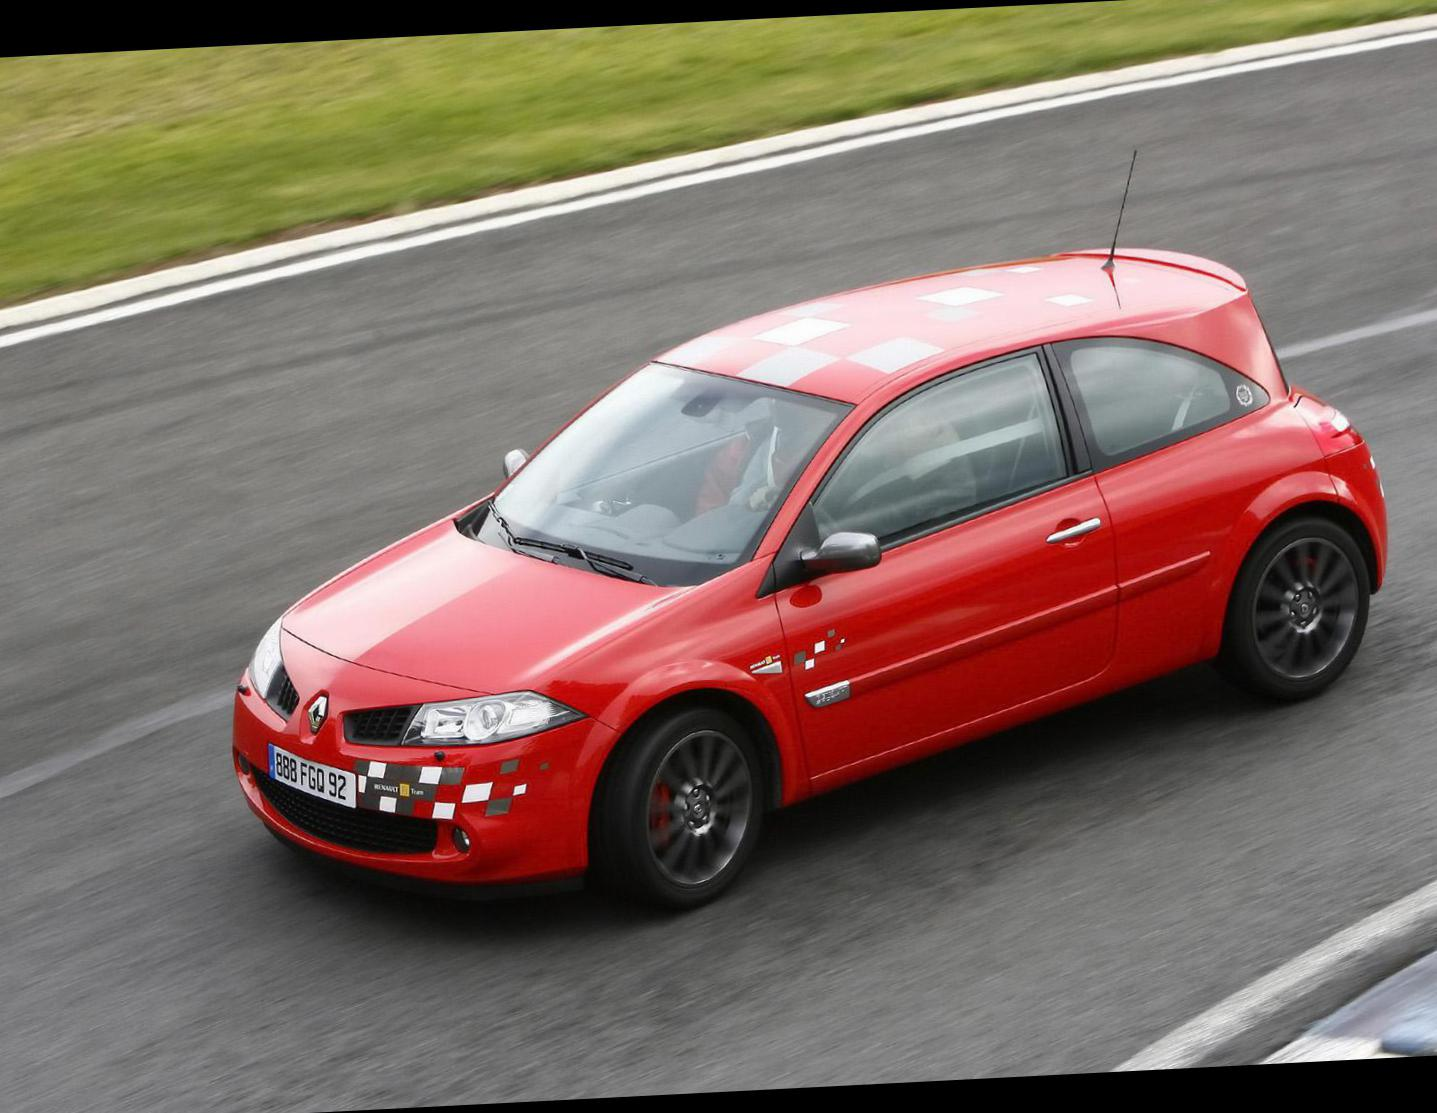 Renault Megane R.S. Specification hatchback